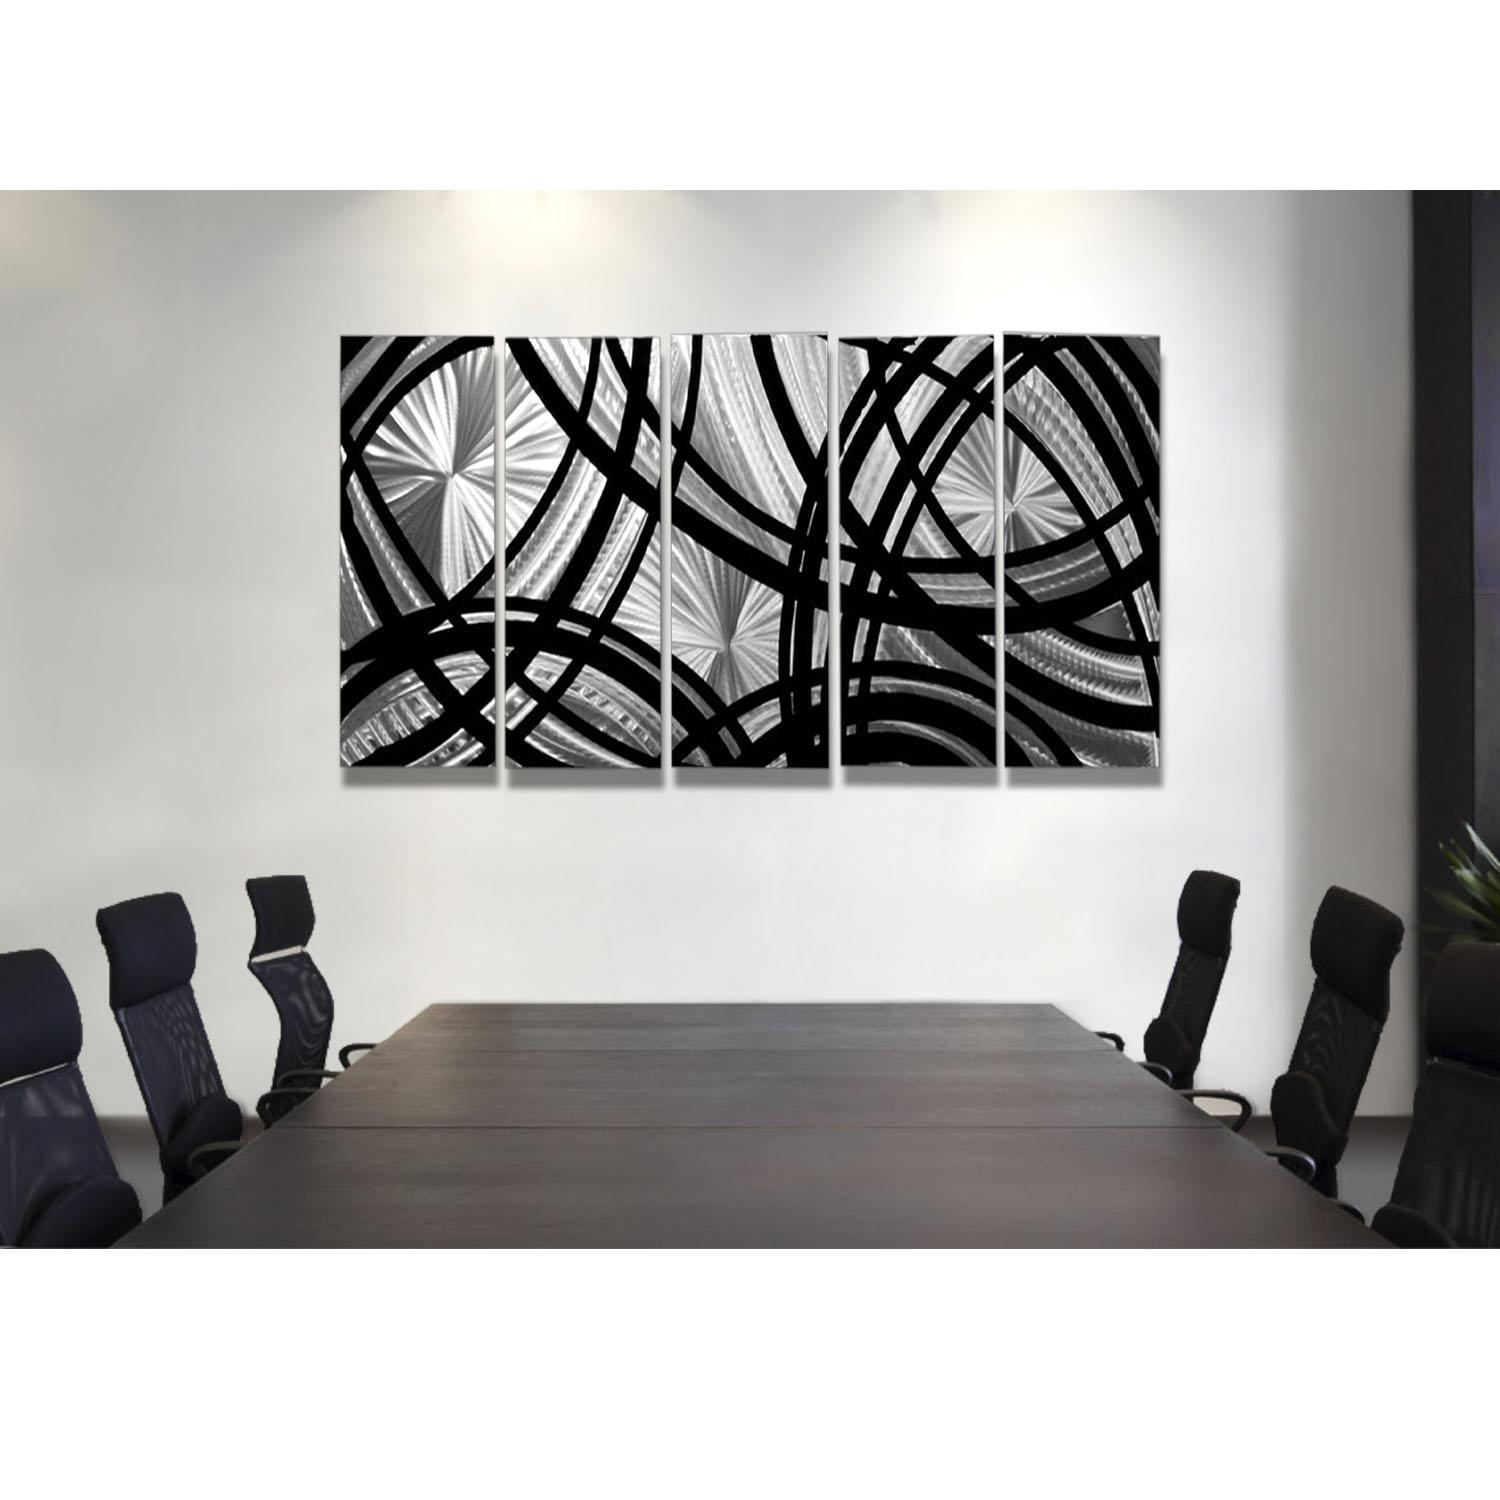 Frequency One – Black And Silver Metal Wall Art – 5 Panel Wall For Black Silver Wall Art (Image 6 of 20)